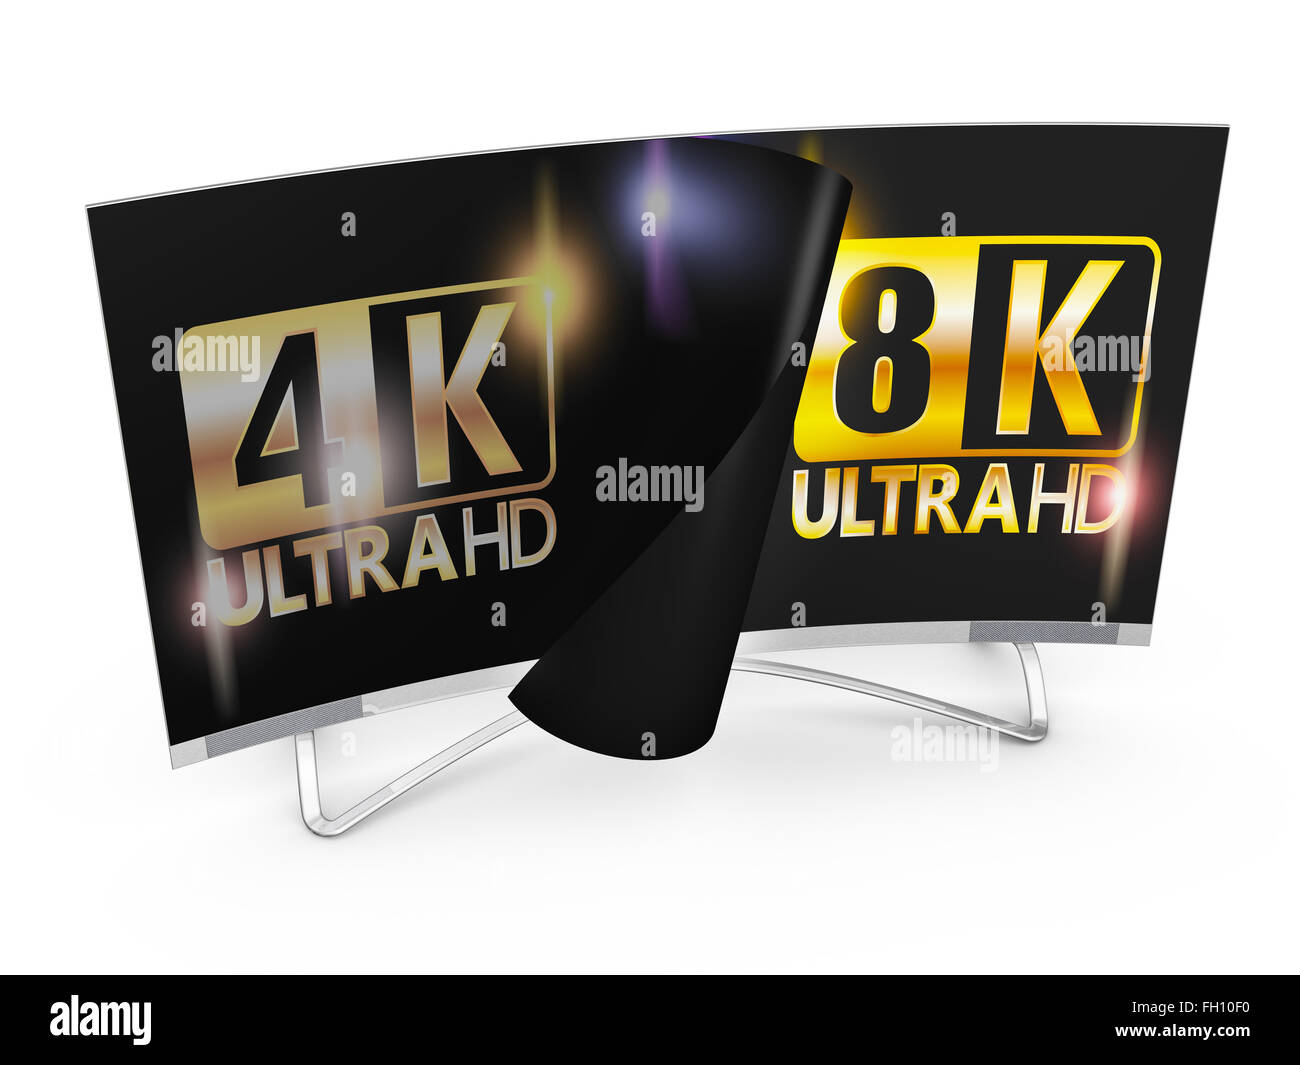 how to clean 4k tv screen